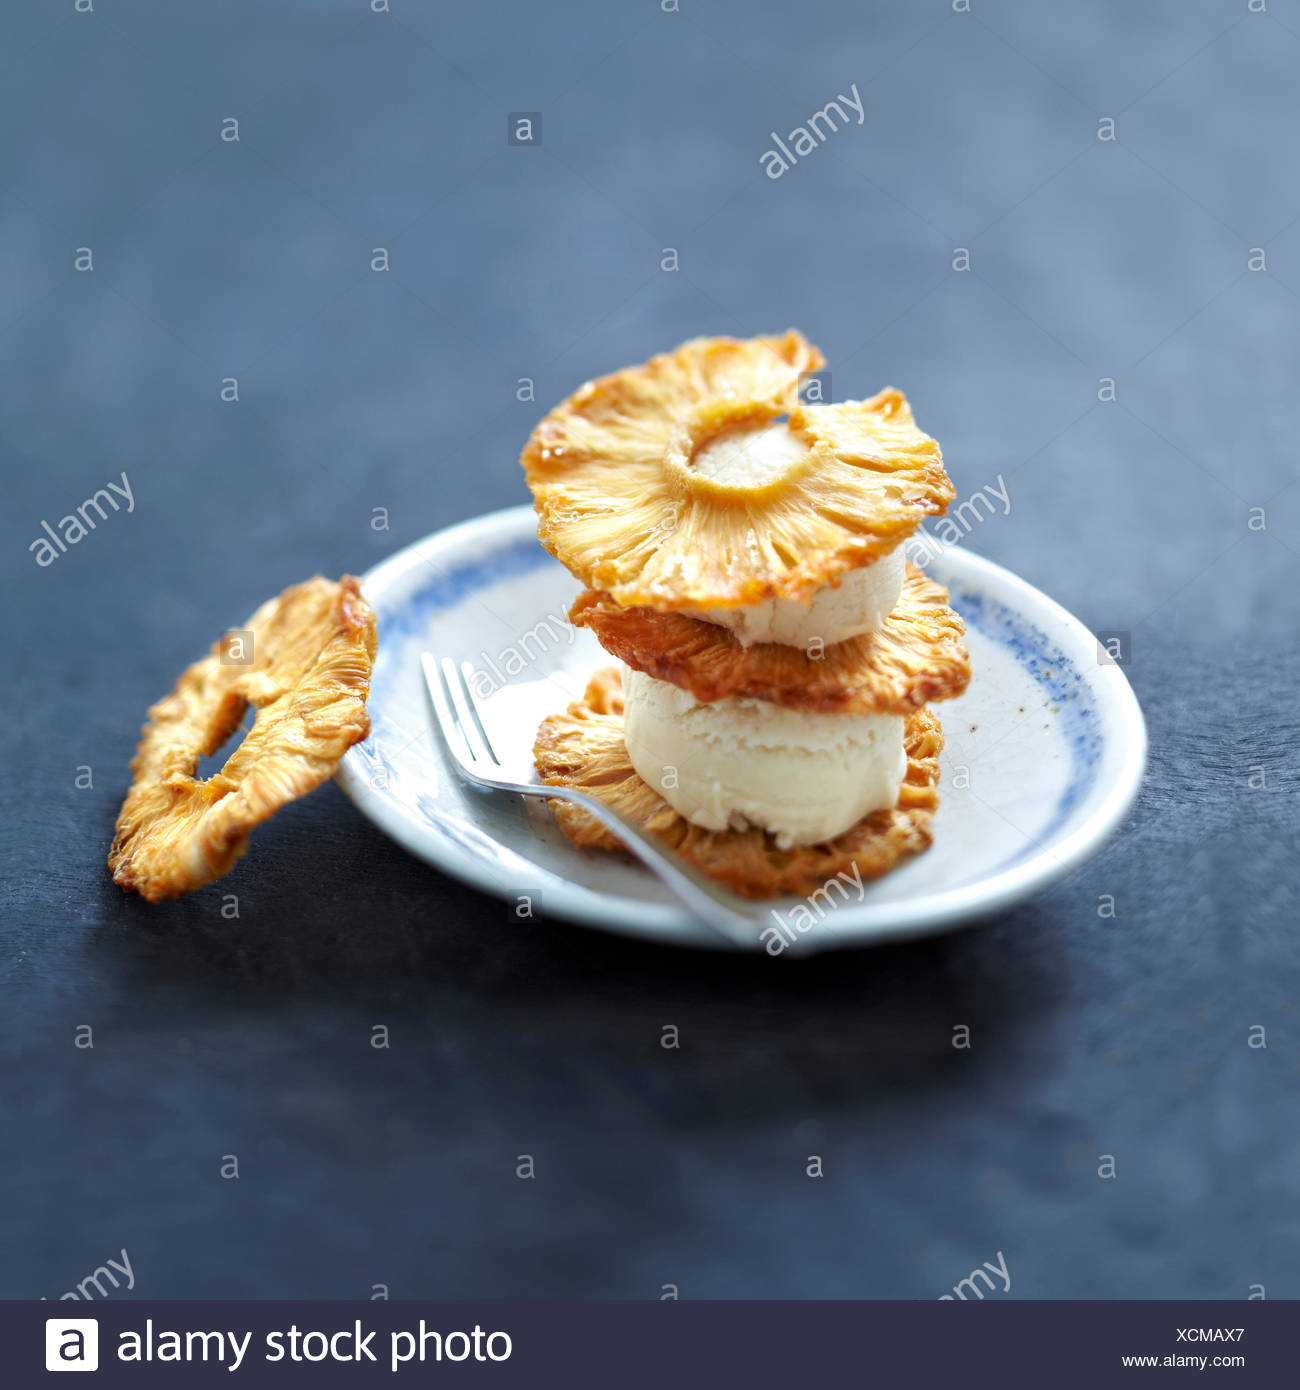 Sliced fried pineapple and coconut ice cream dessert - Stock Image